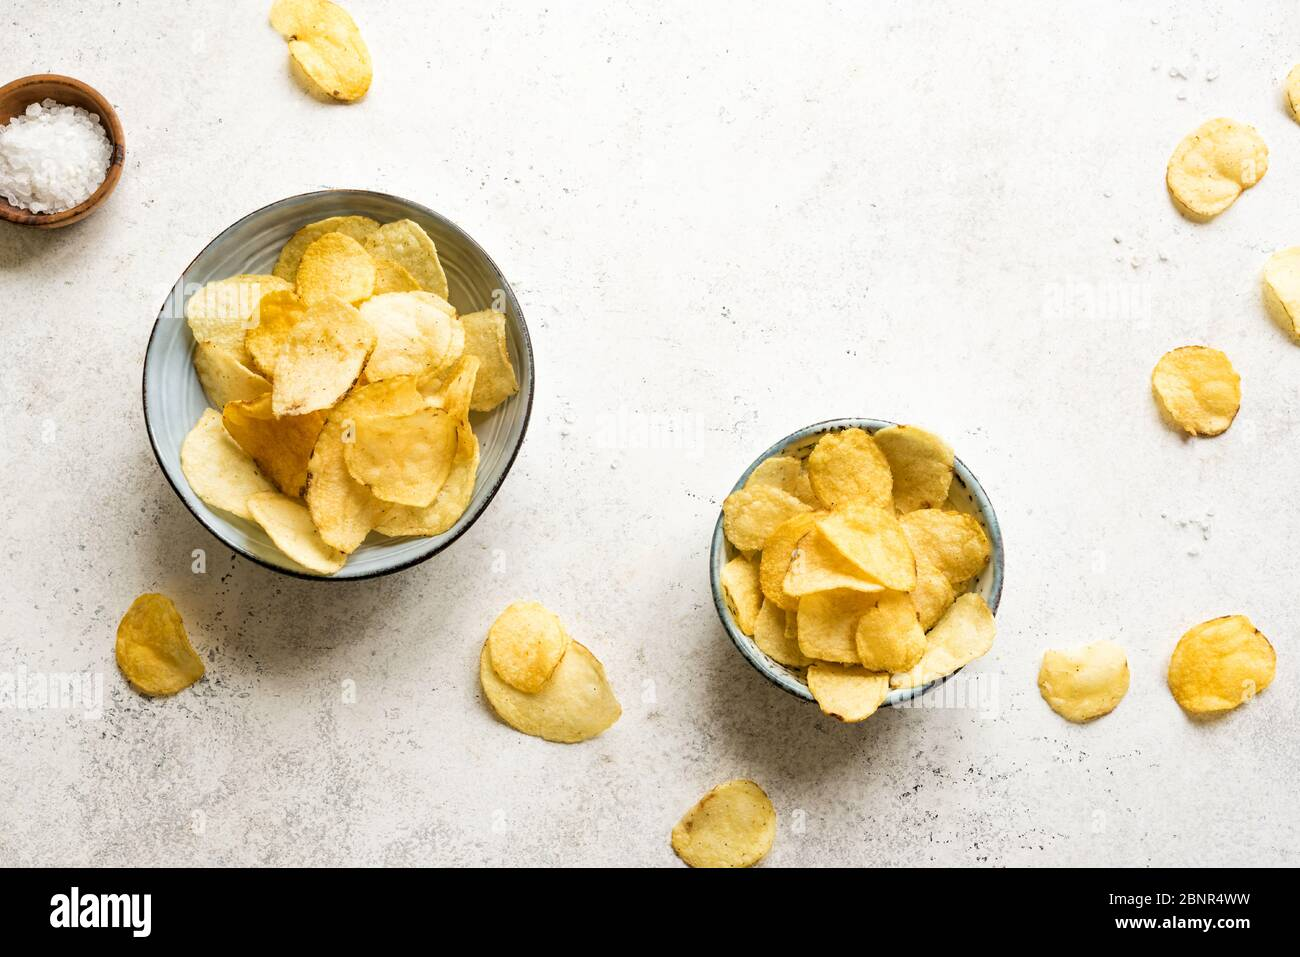 Homemade potato chips in bowls. Crispy potato chips on white background, top view, copy space. Stock Photo